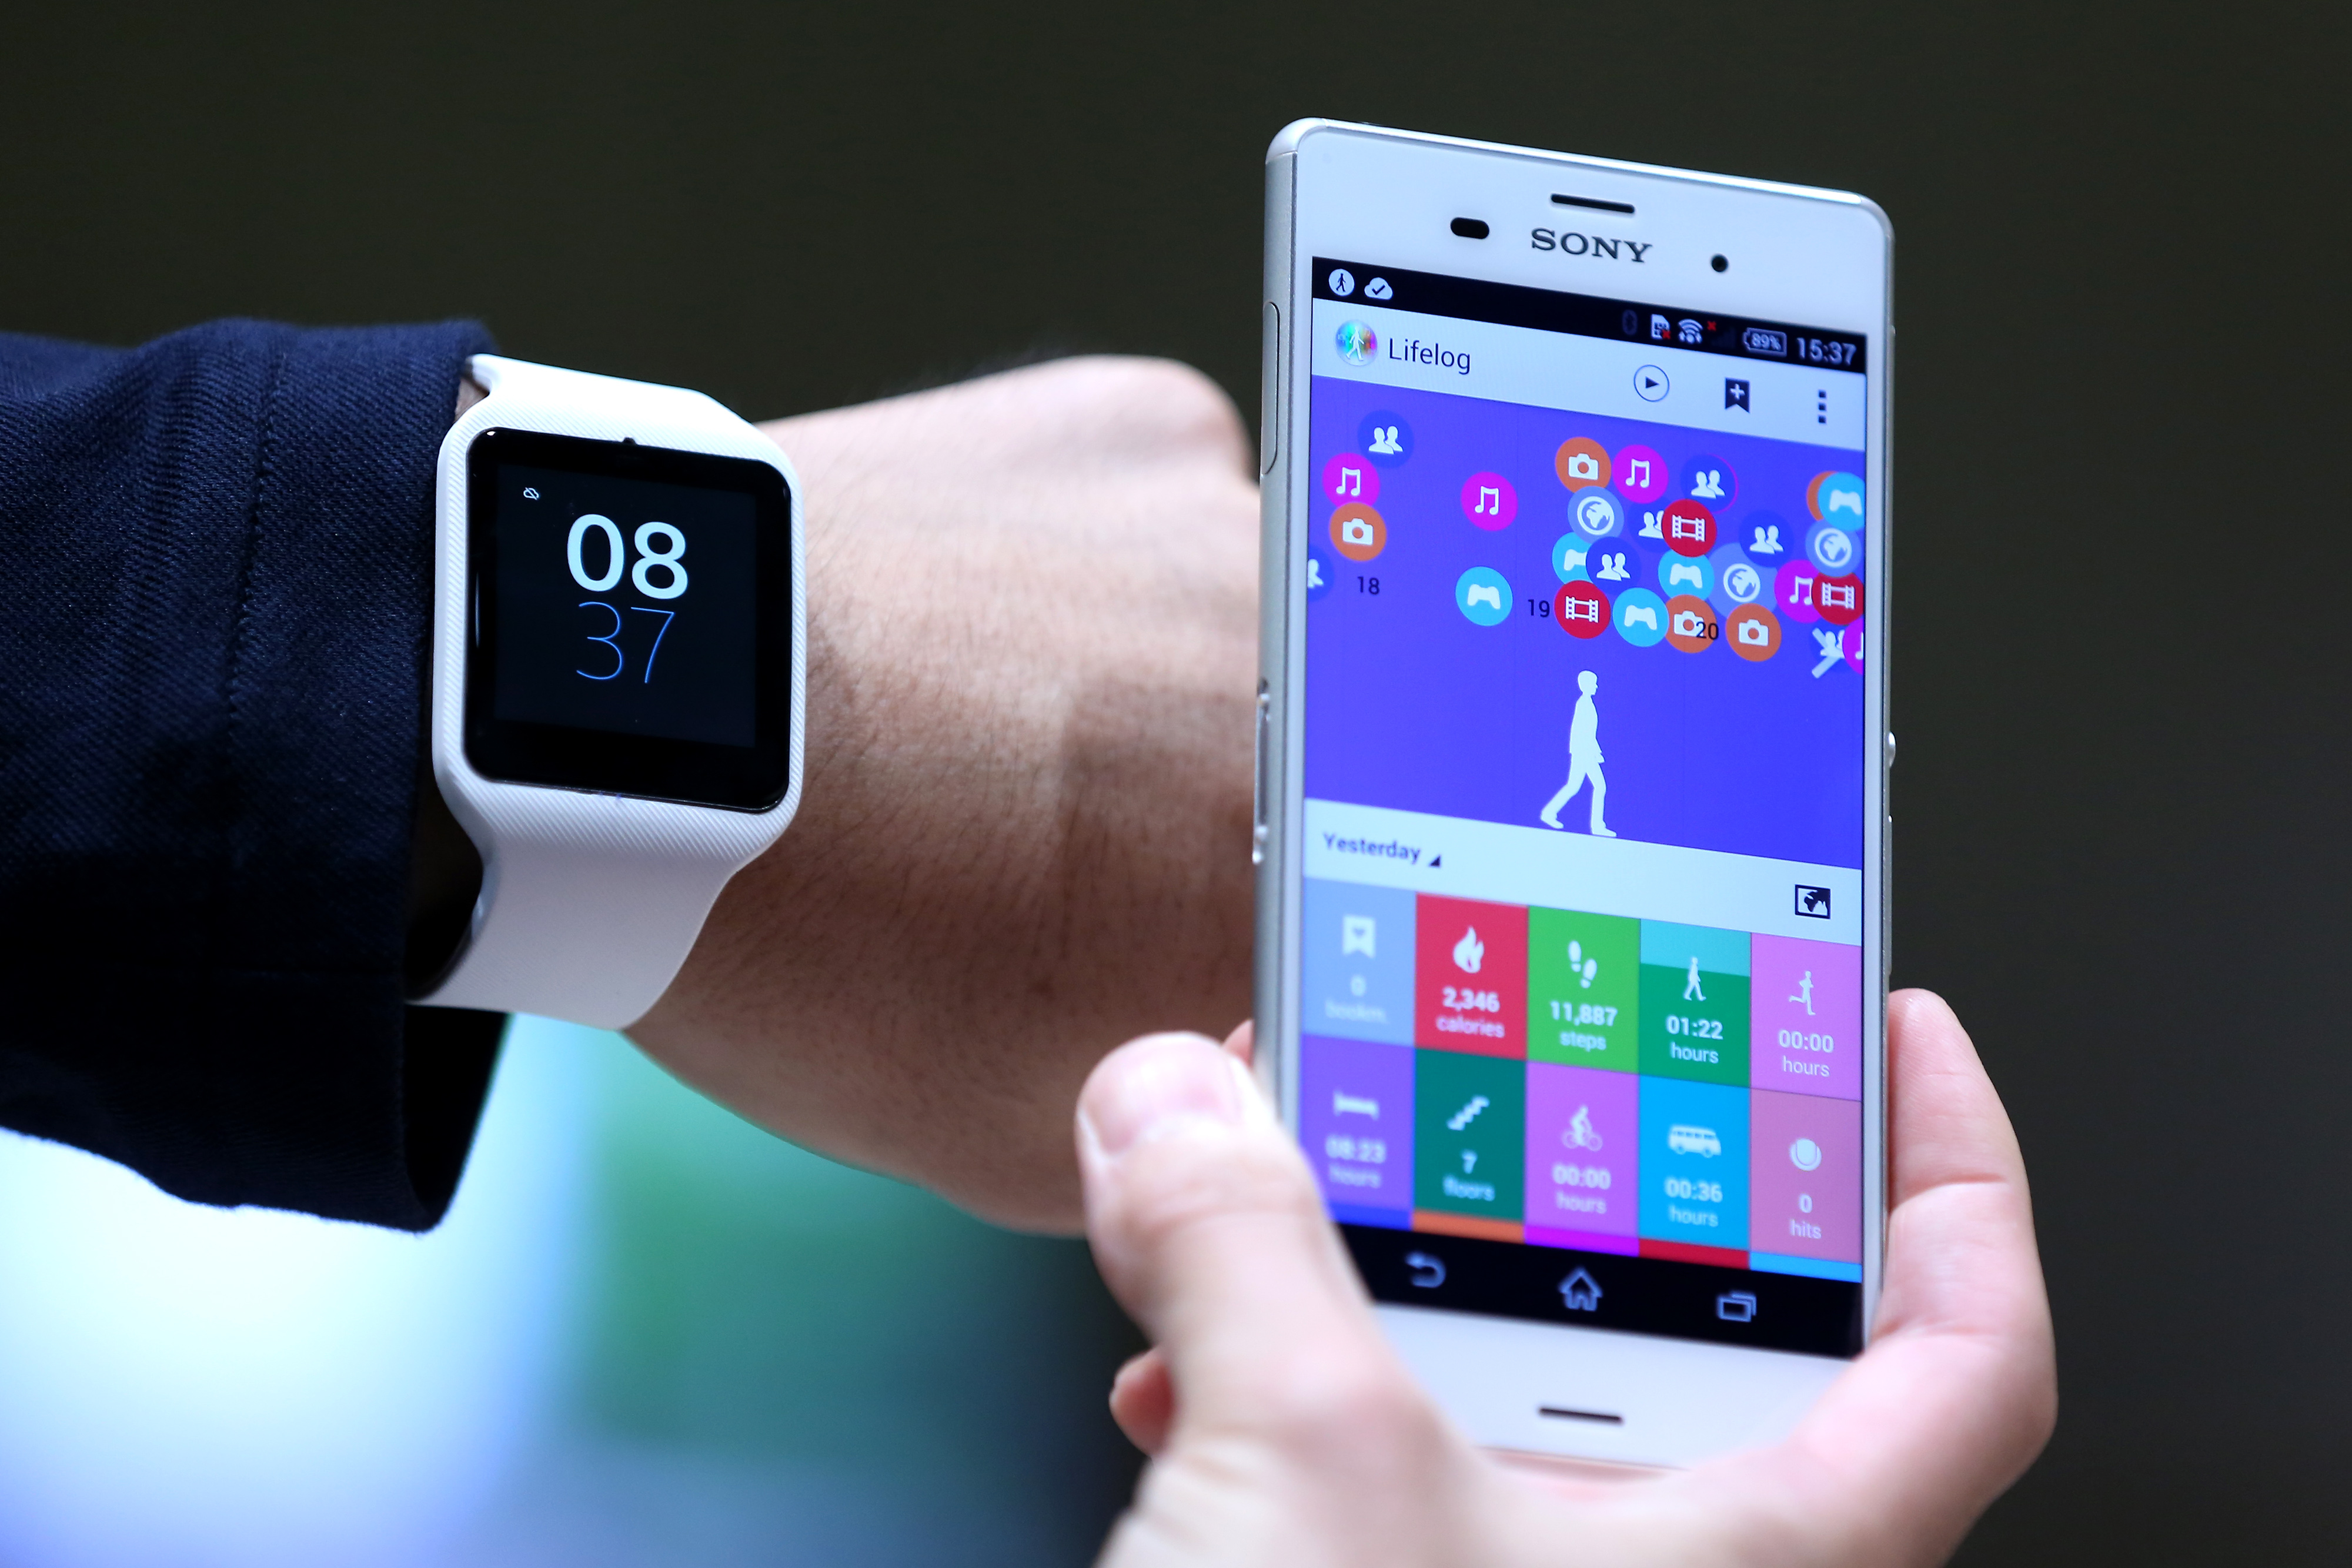 Sony's new SmartWatch 3 wearable device and Xperia Z3 smartphone shown at the company's showroom in Tokyo, Sept. 9, 2014.